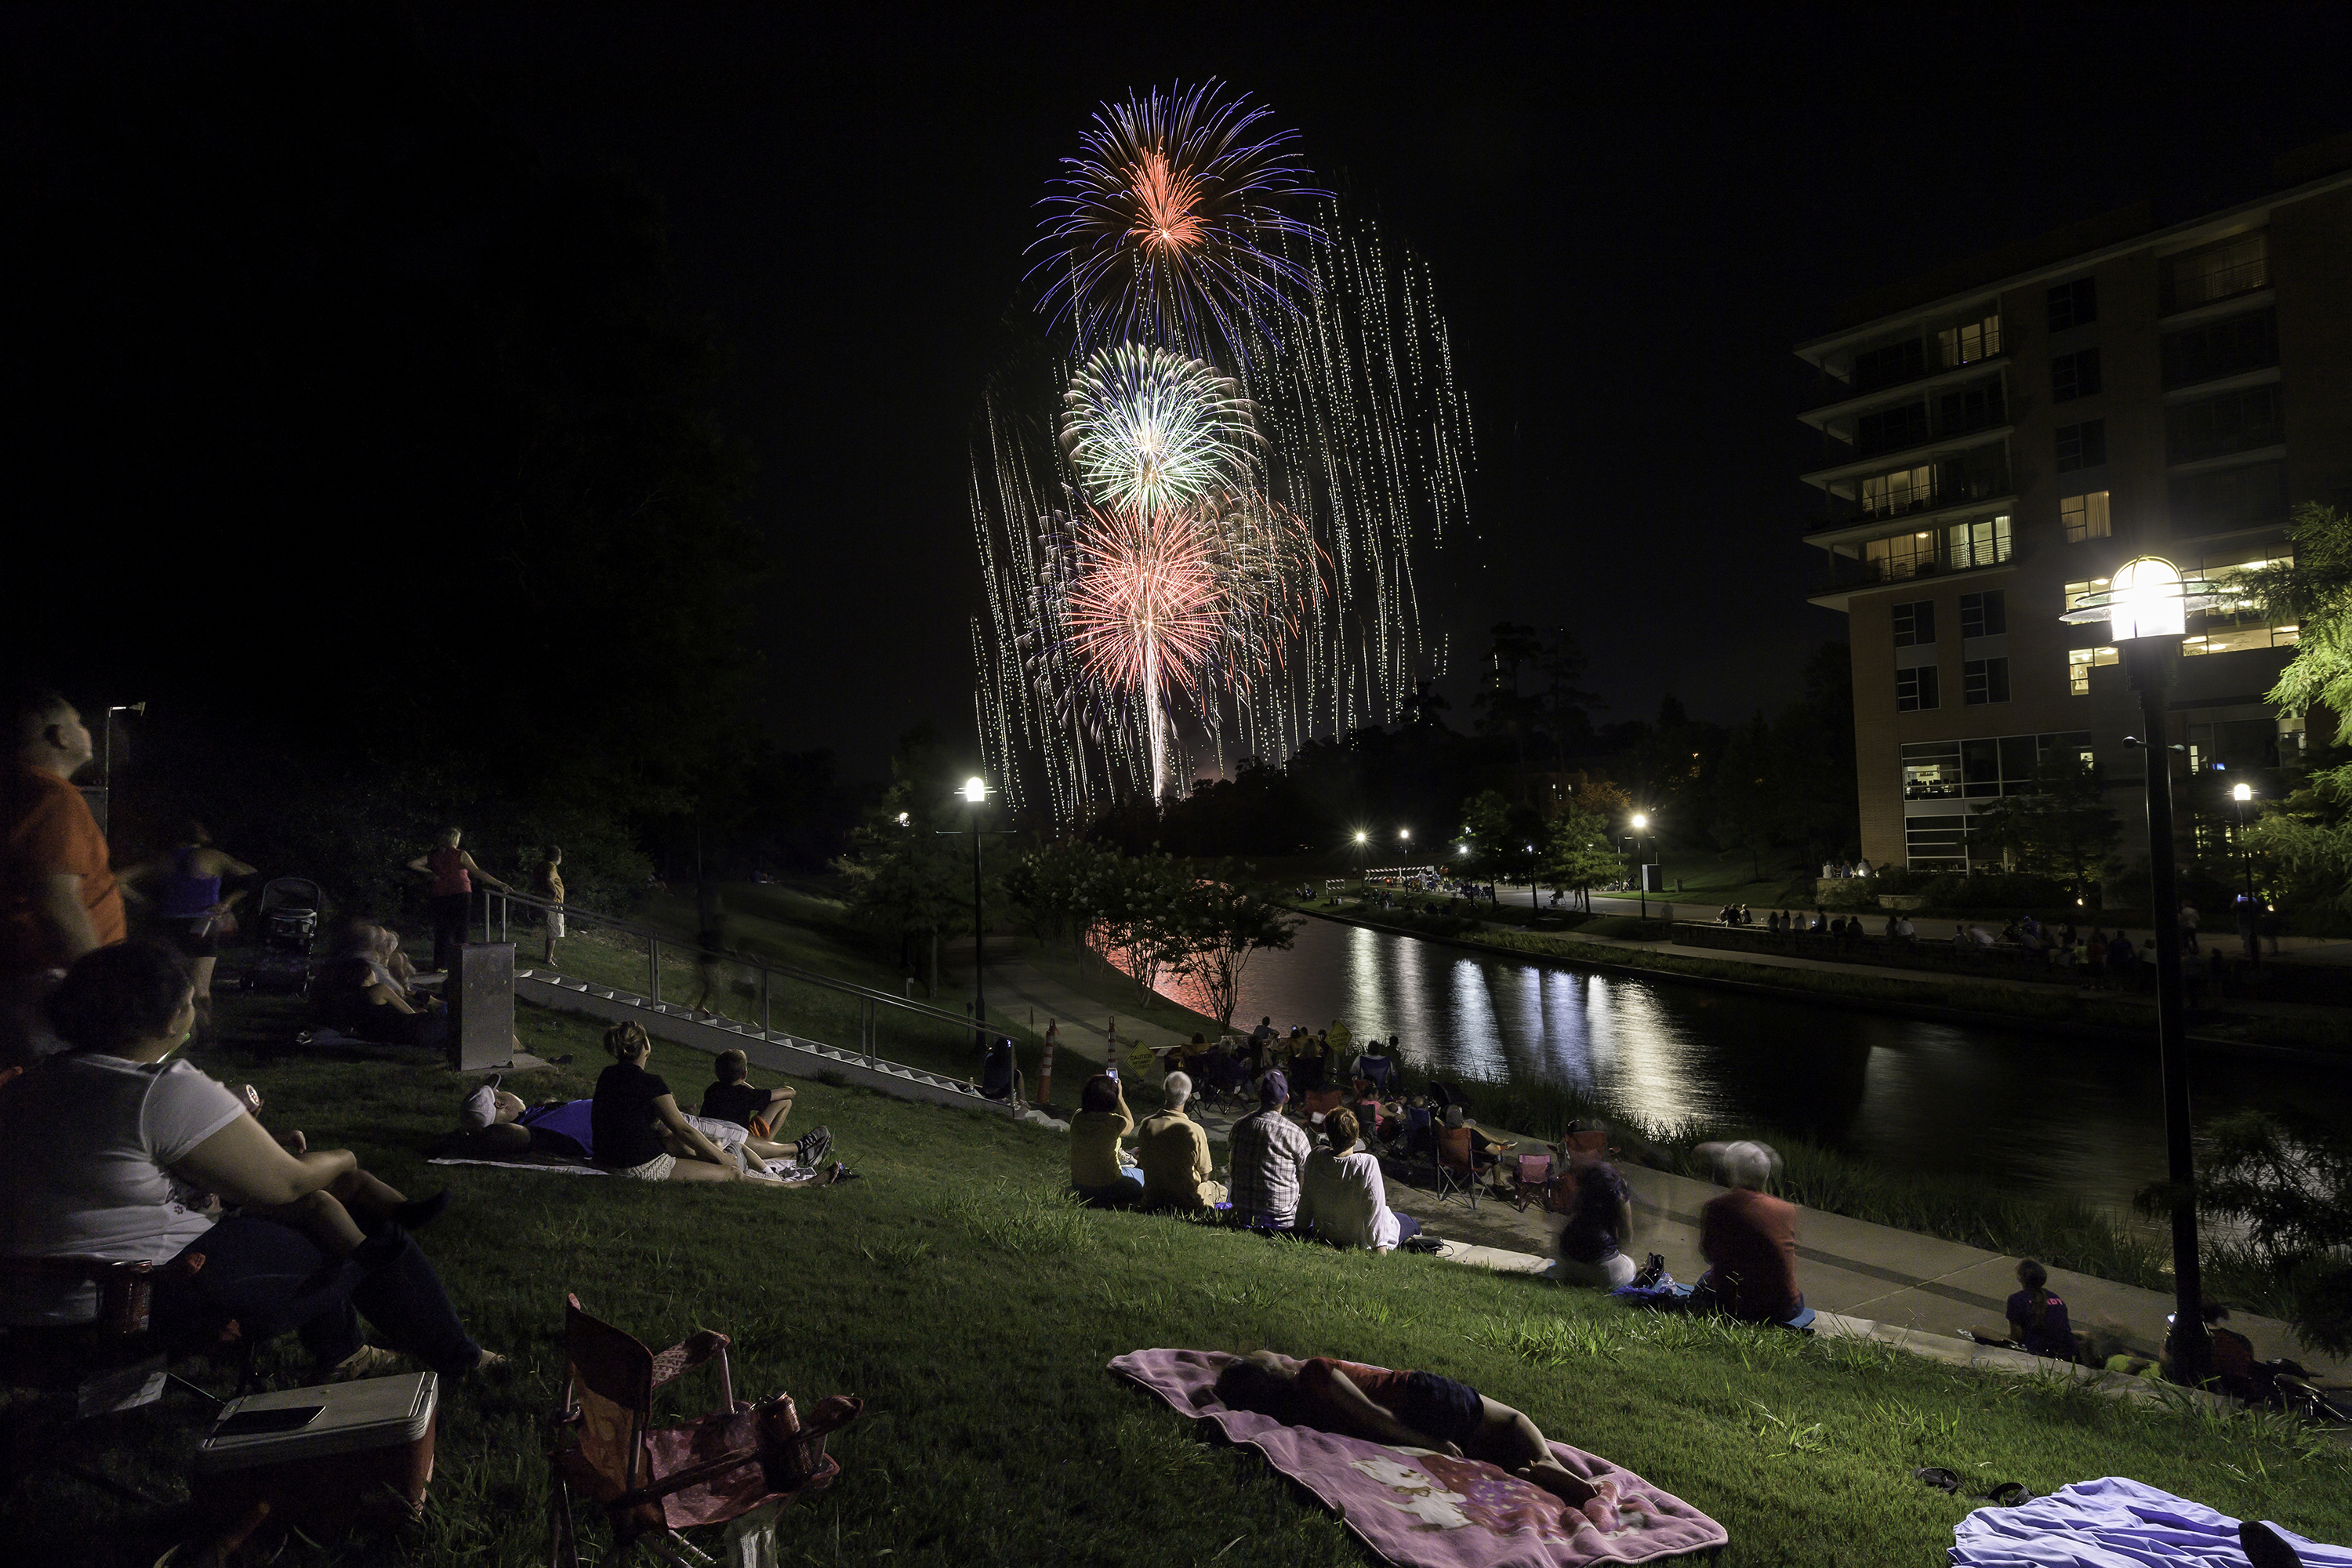 Township celebrates Independence Day